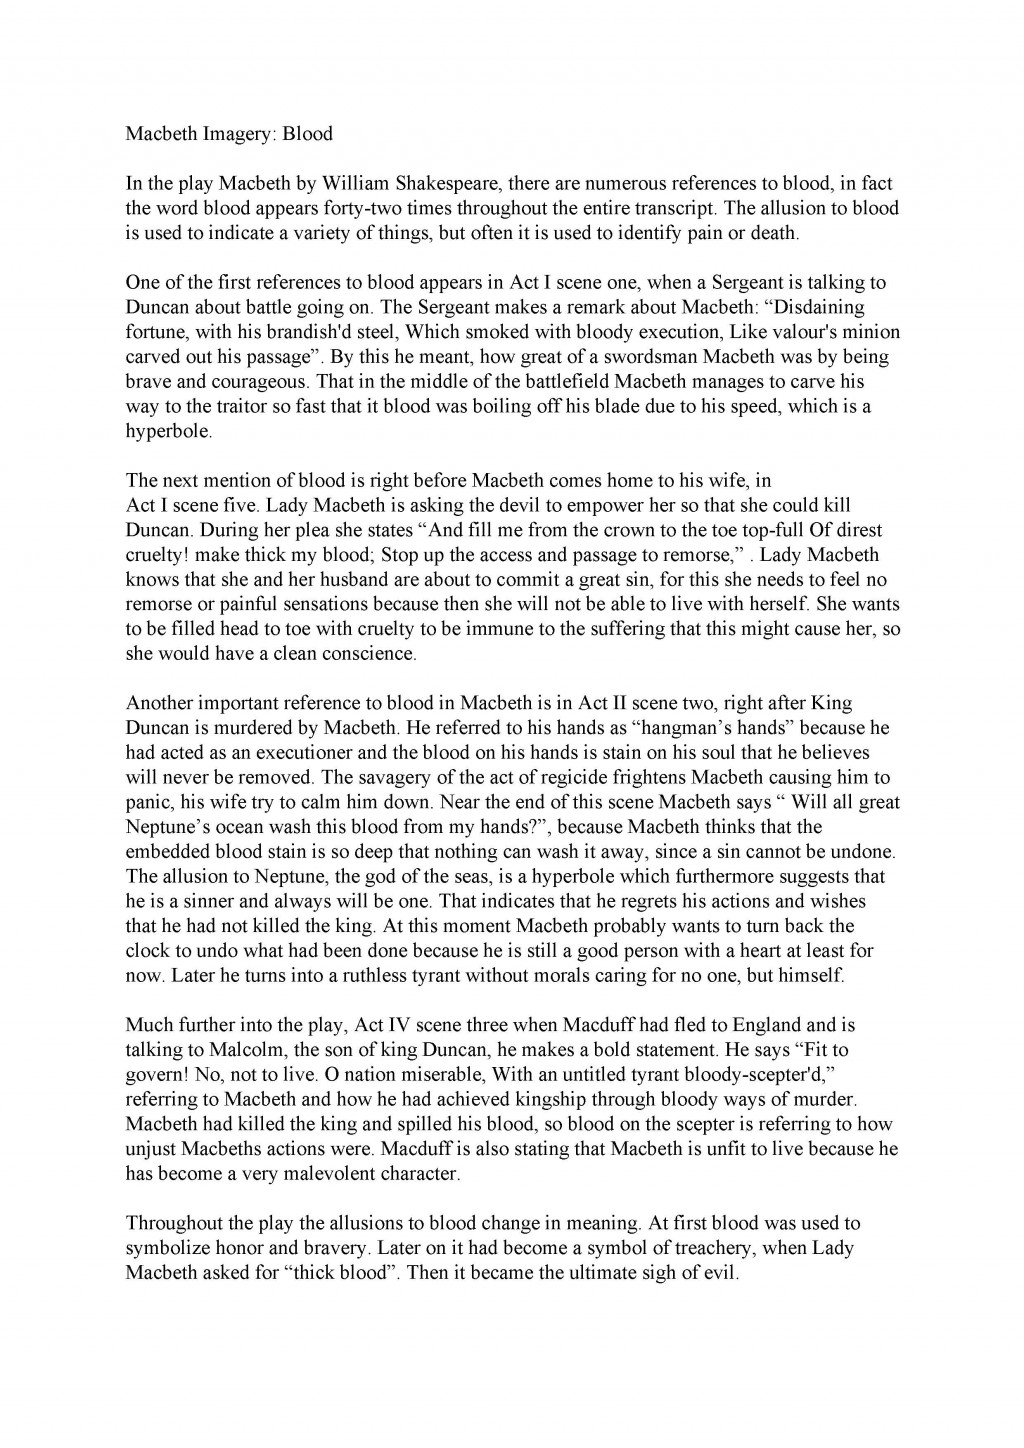 014 Essay Example How To Start Good Macbeth Awesome A Paper For College Introduction Biography About Yourself Large